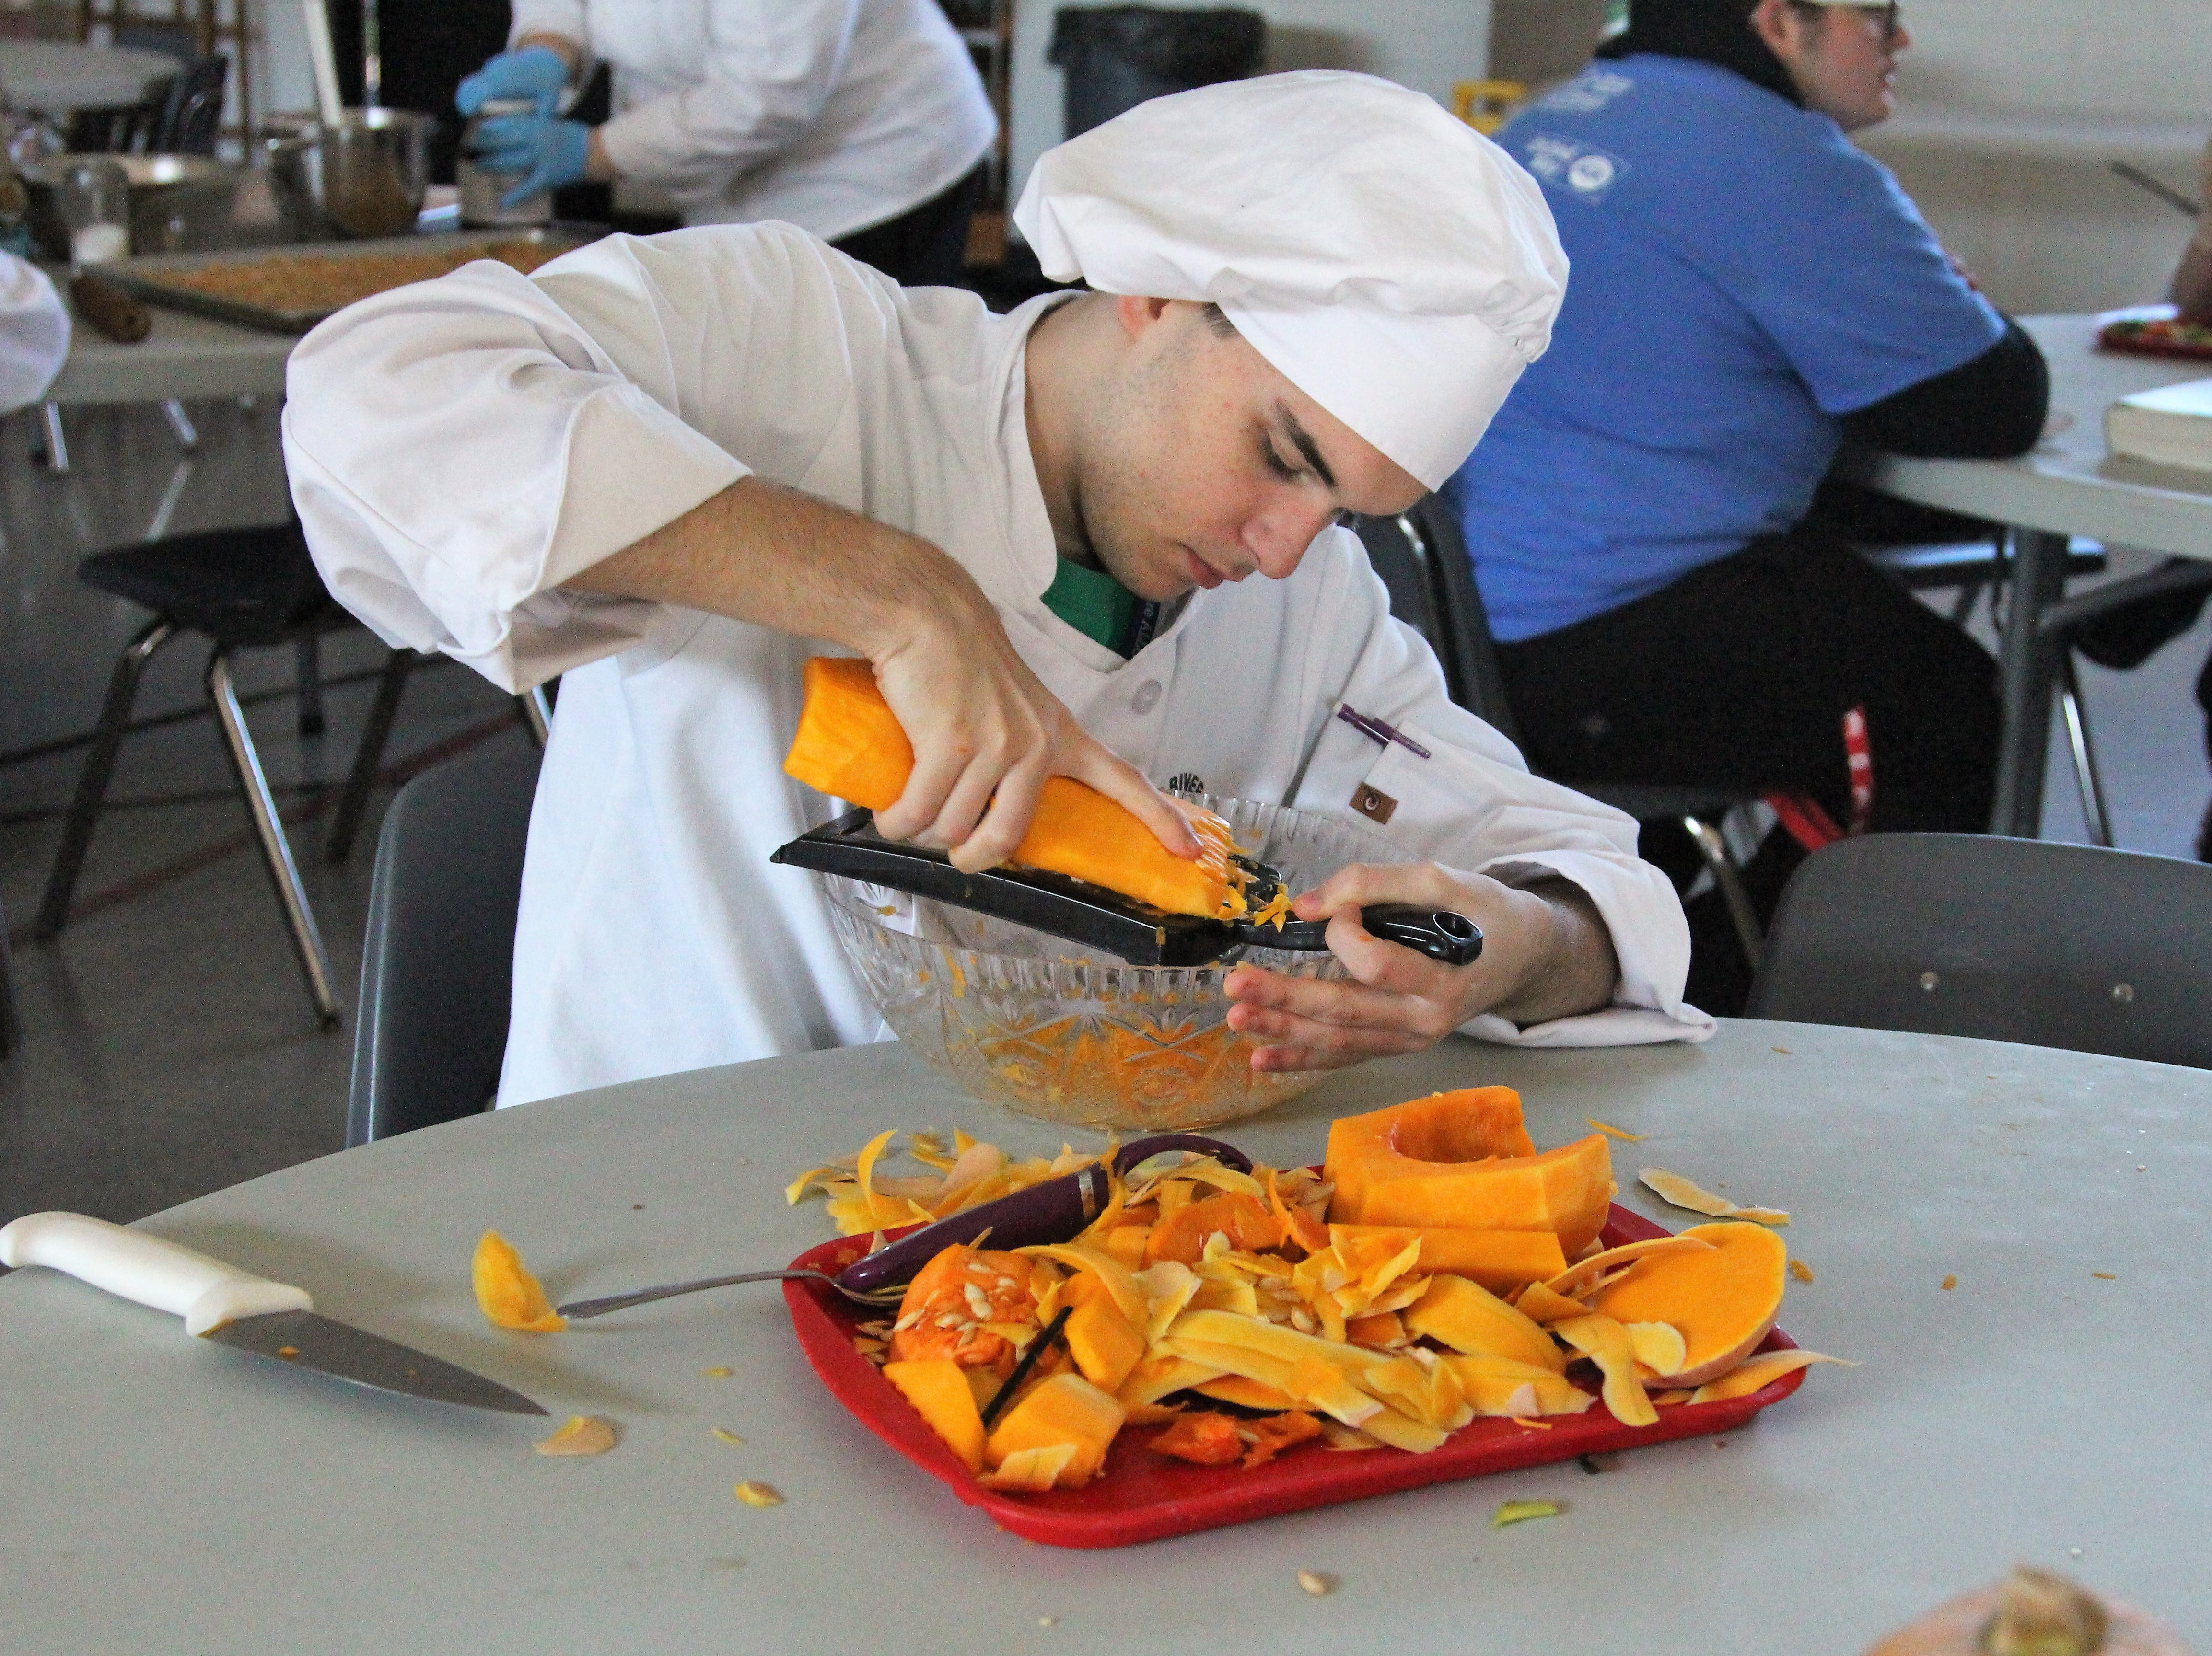 Tri-River's senior Caleb Ault grates a squash at the Salvation Army on Friday. He was one of 15 culinary students there that day.